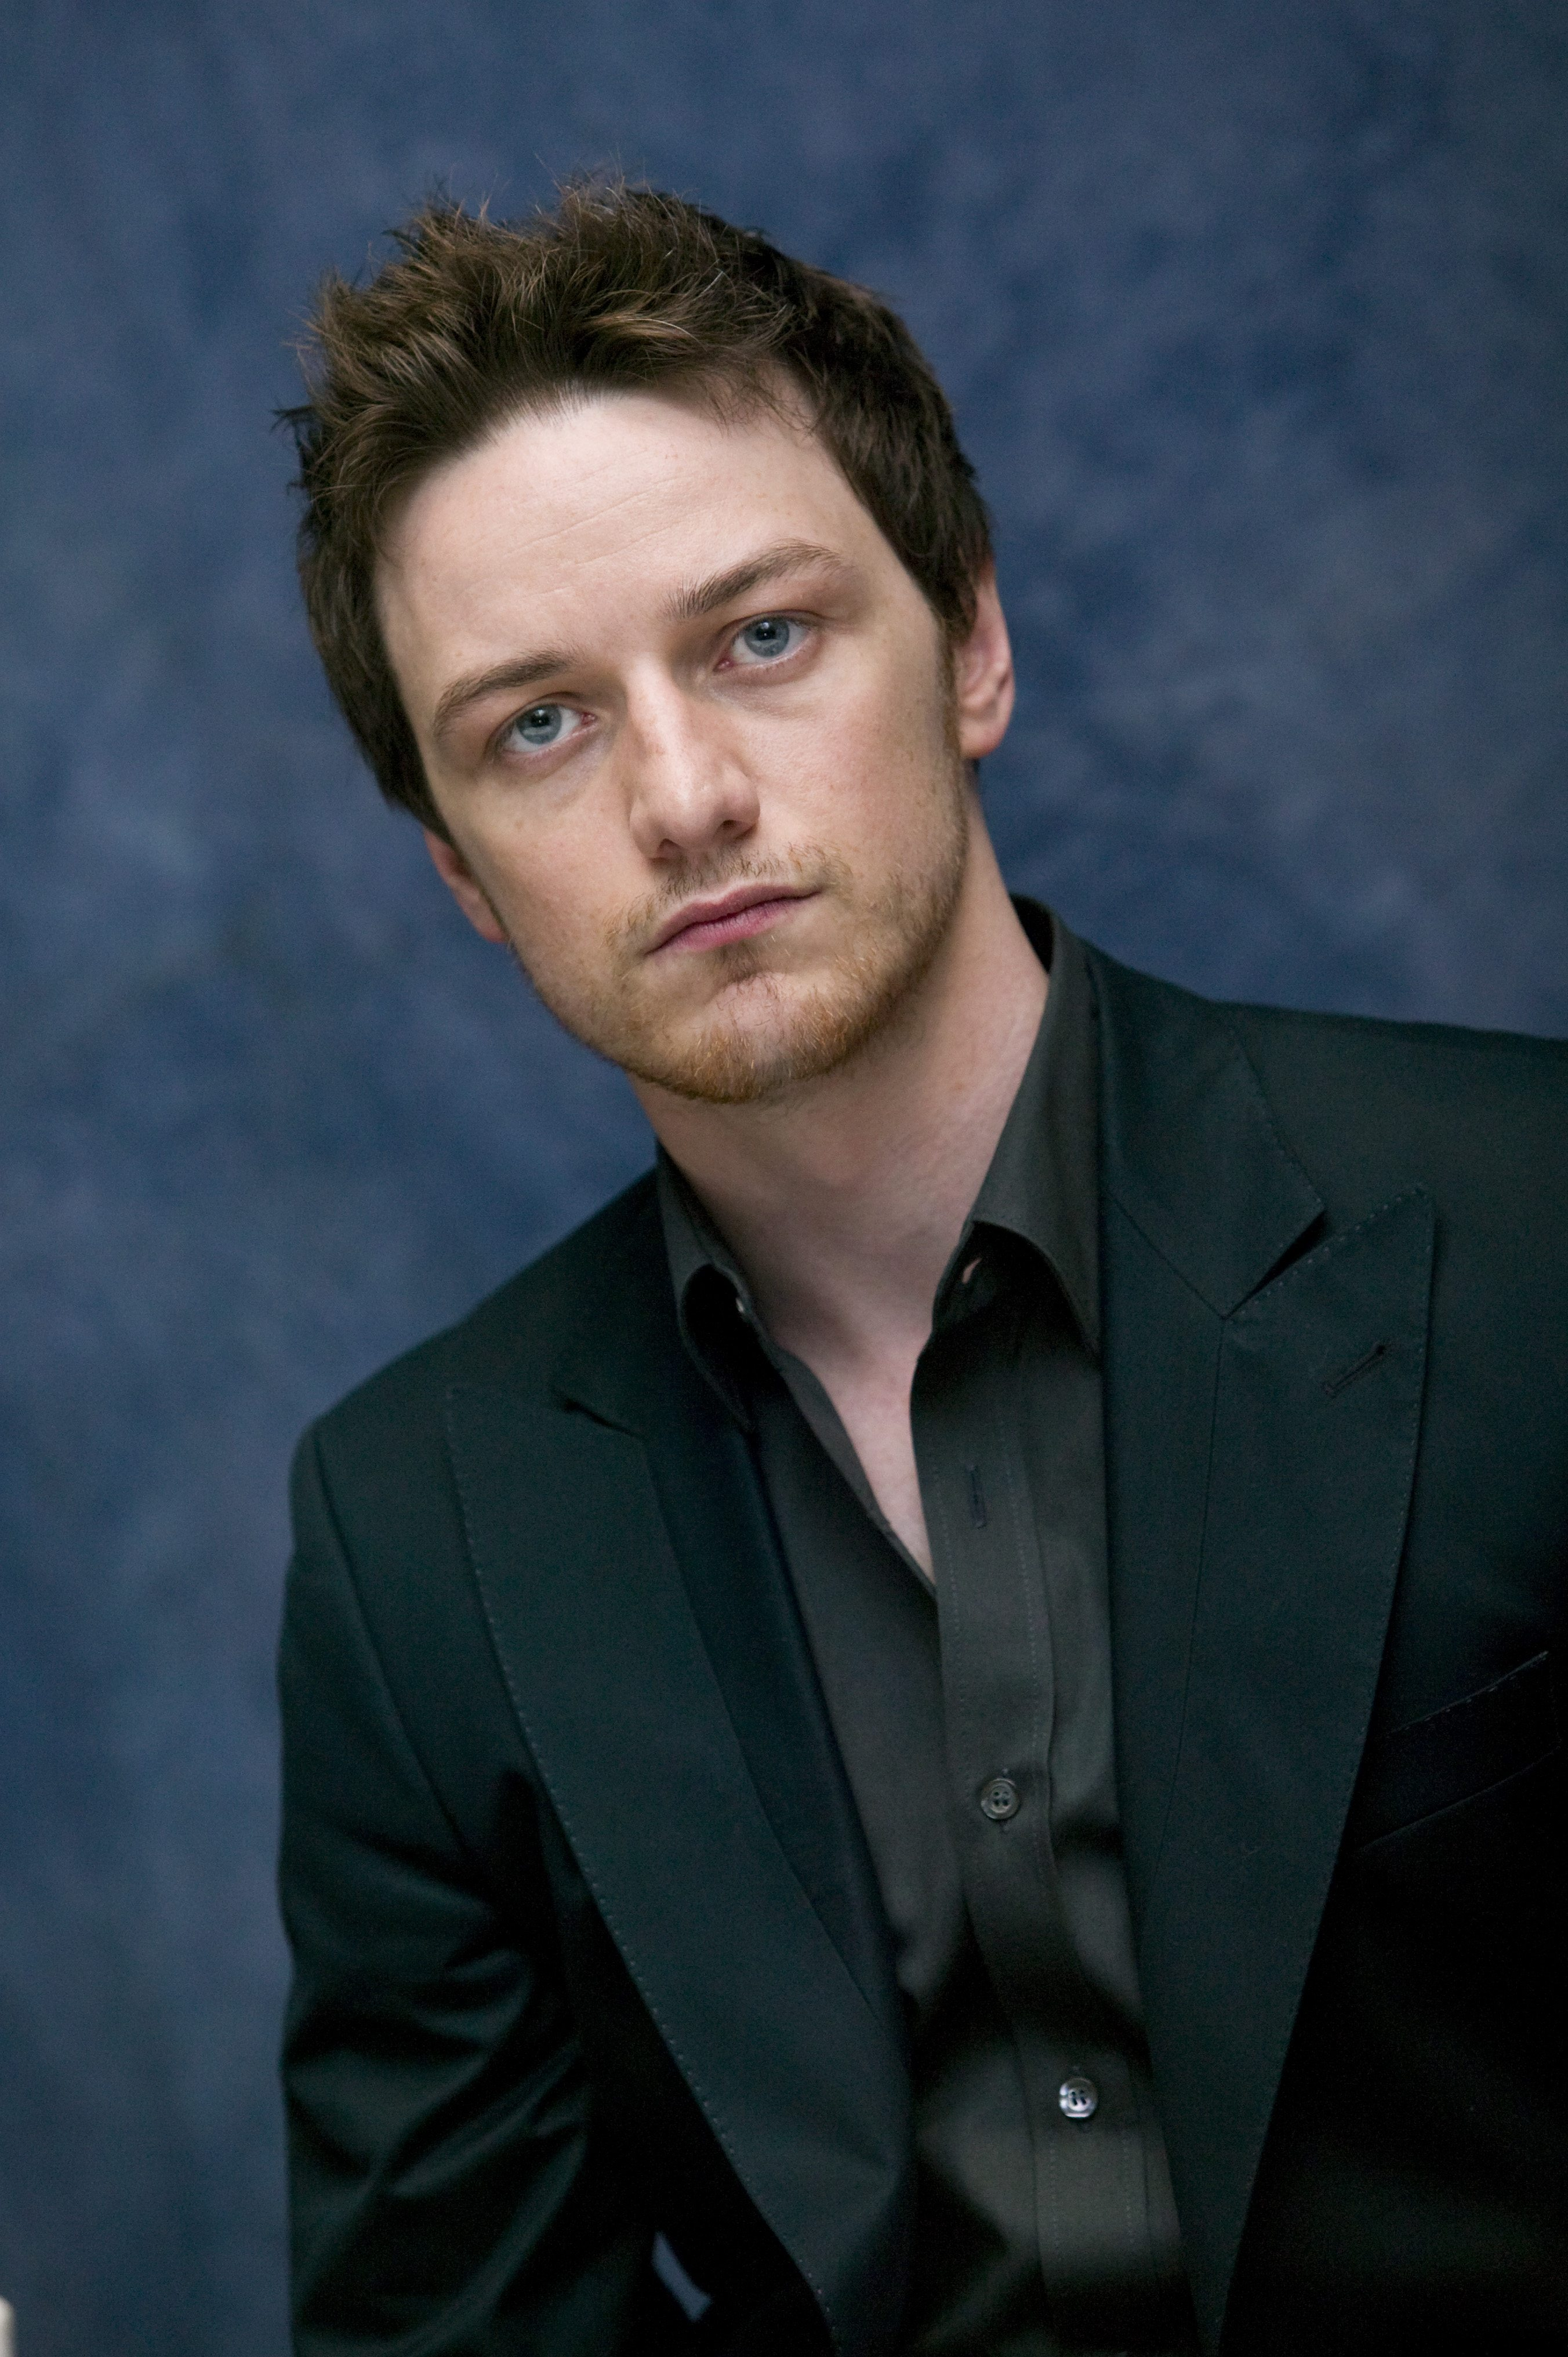 James McAvoy photo #250677